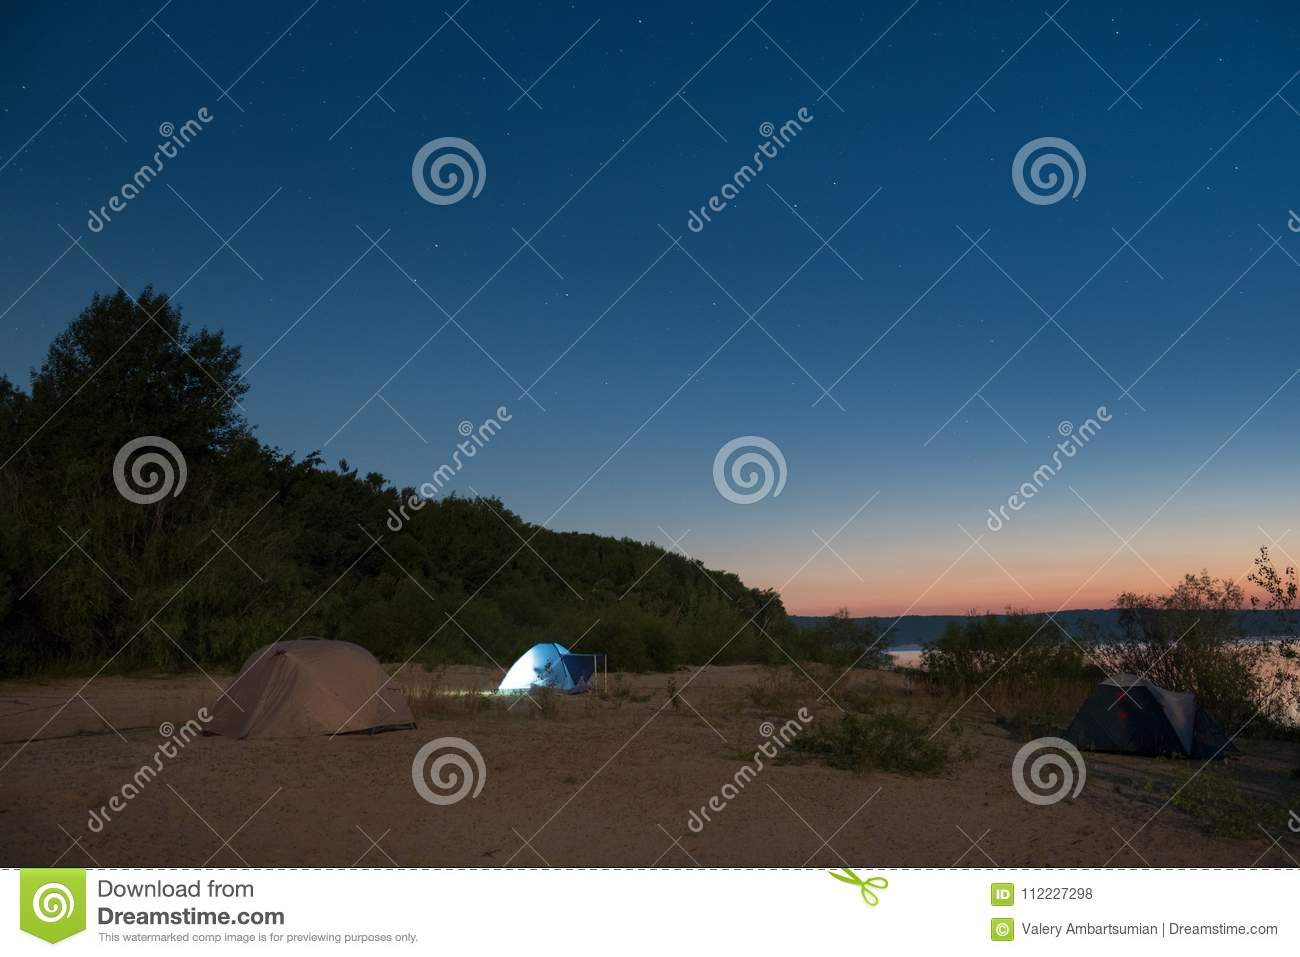 tourist tents on a sandy beach at night with moonlight surrounded by